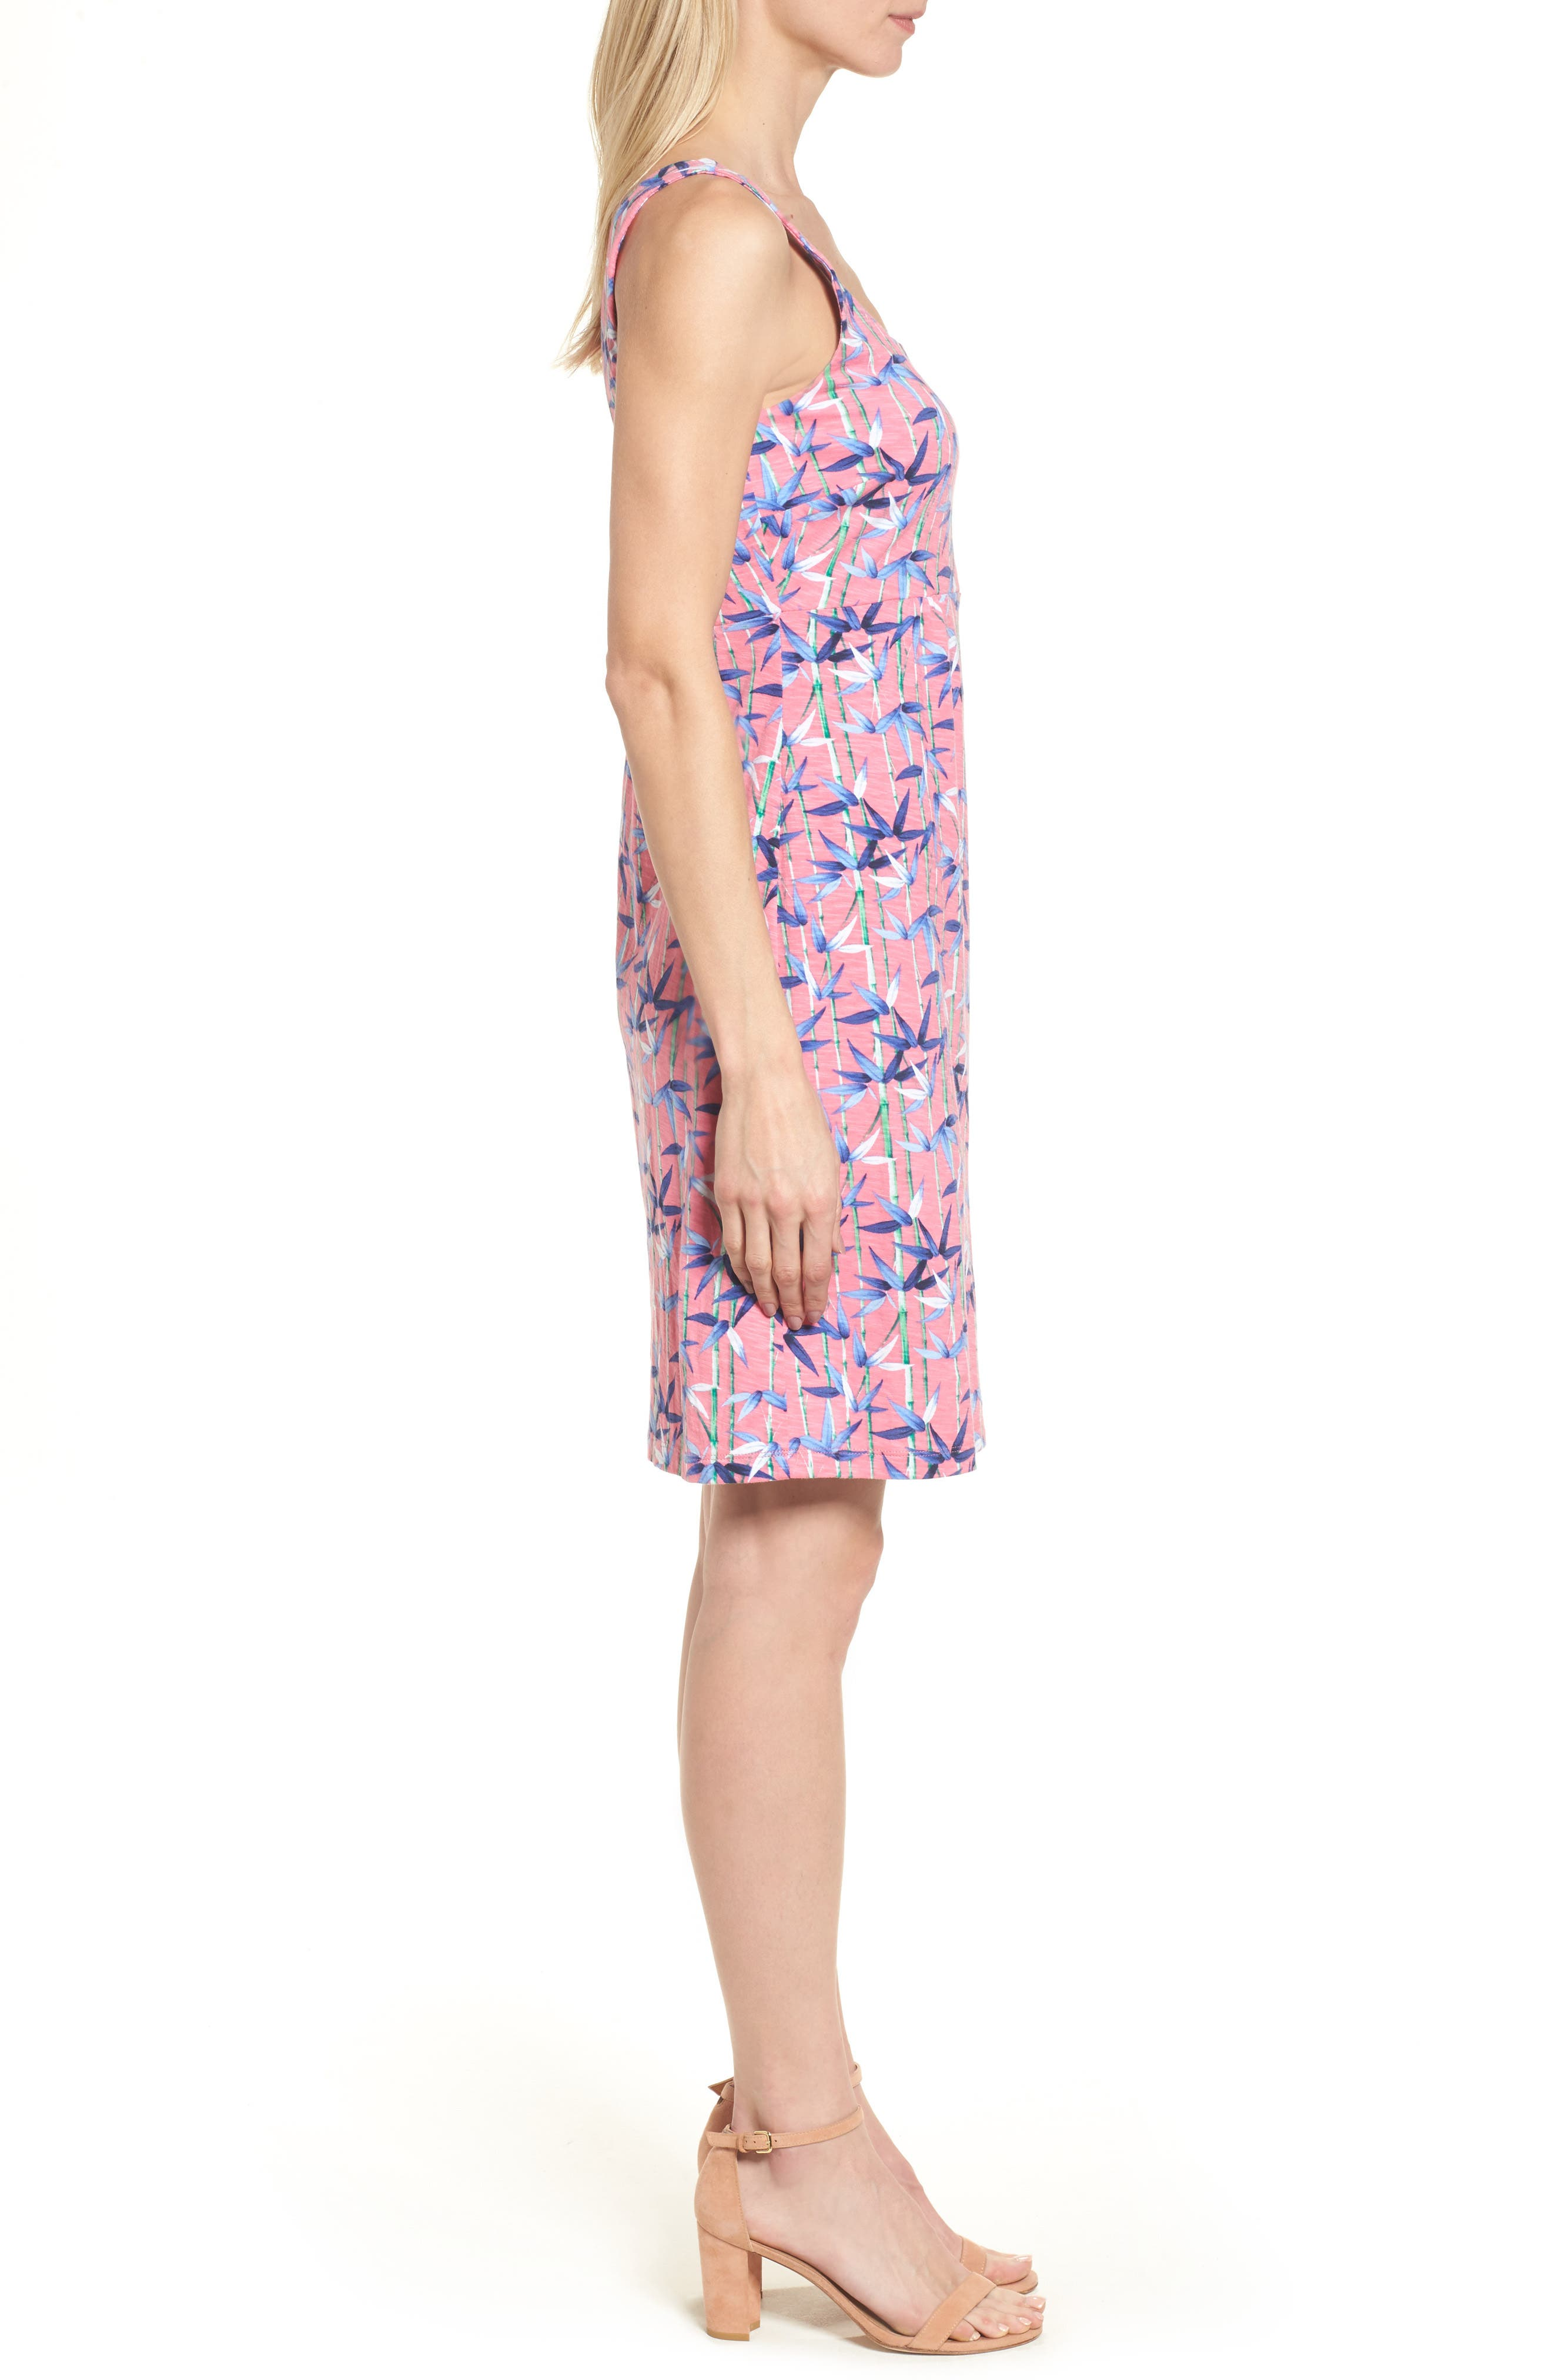 Bamboo Forest Sleeveless Dress,                             Alternate thumbnail 3, color,                             Soft Flamingo